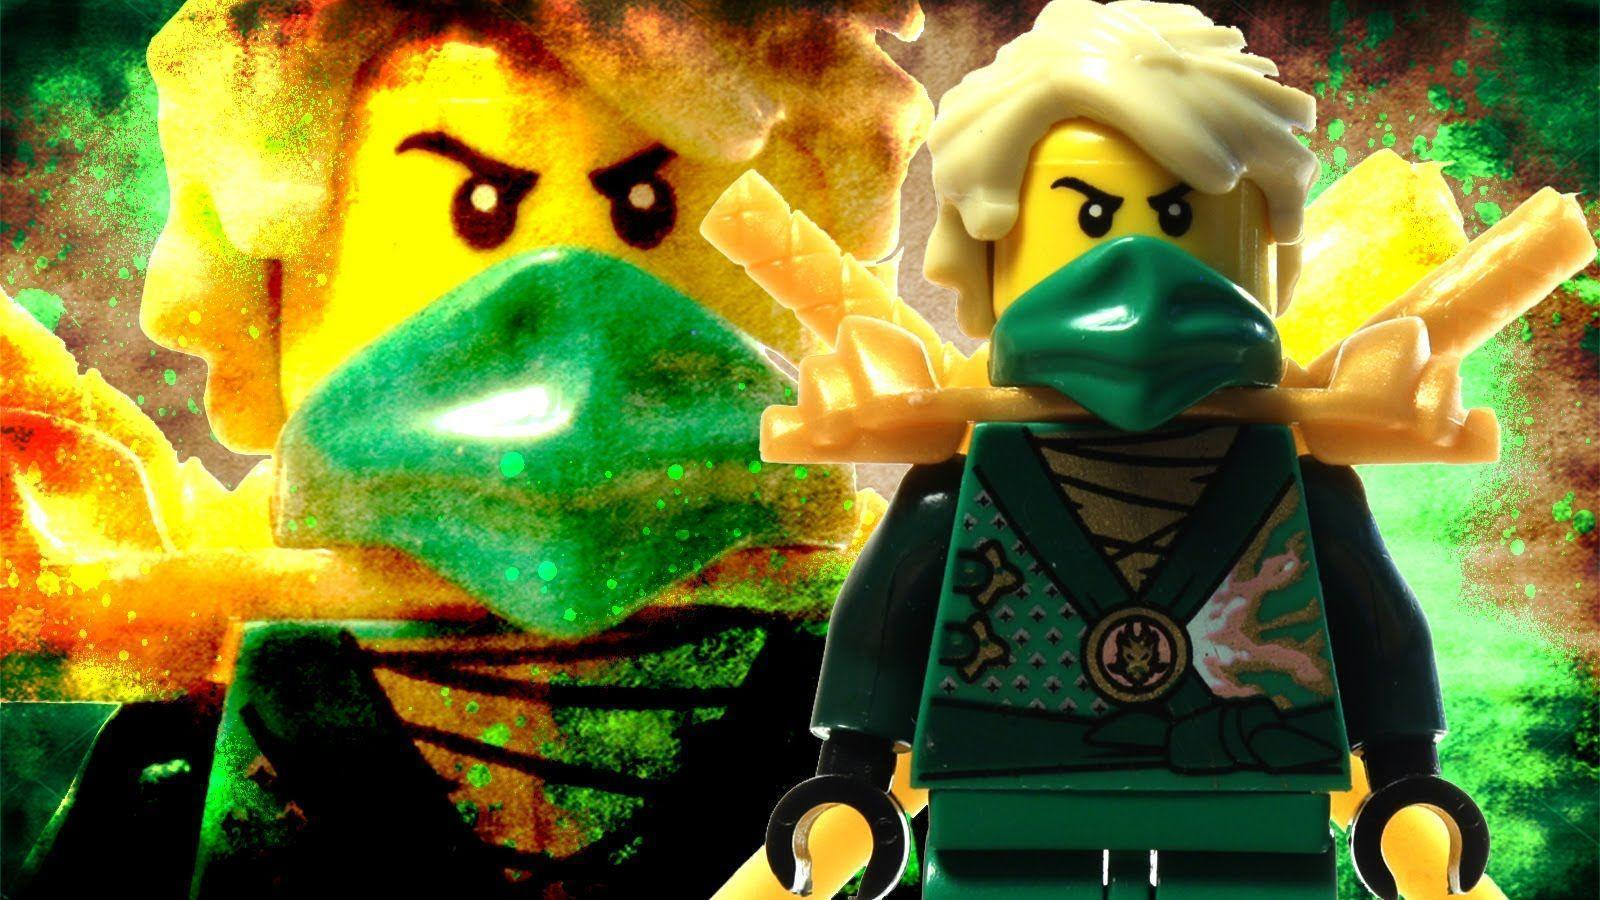 Ninjago wallpapers wallpaper cave - Ninjago phone wallpaper ...